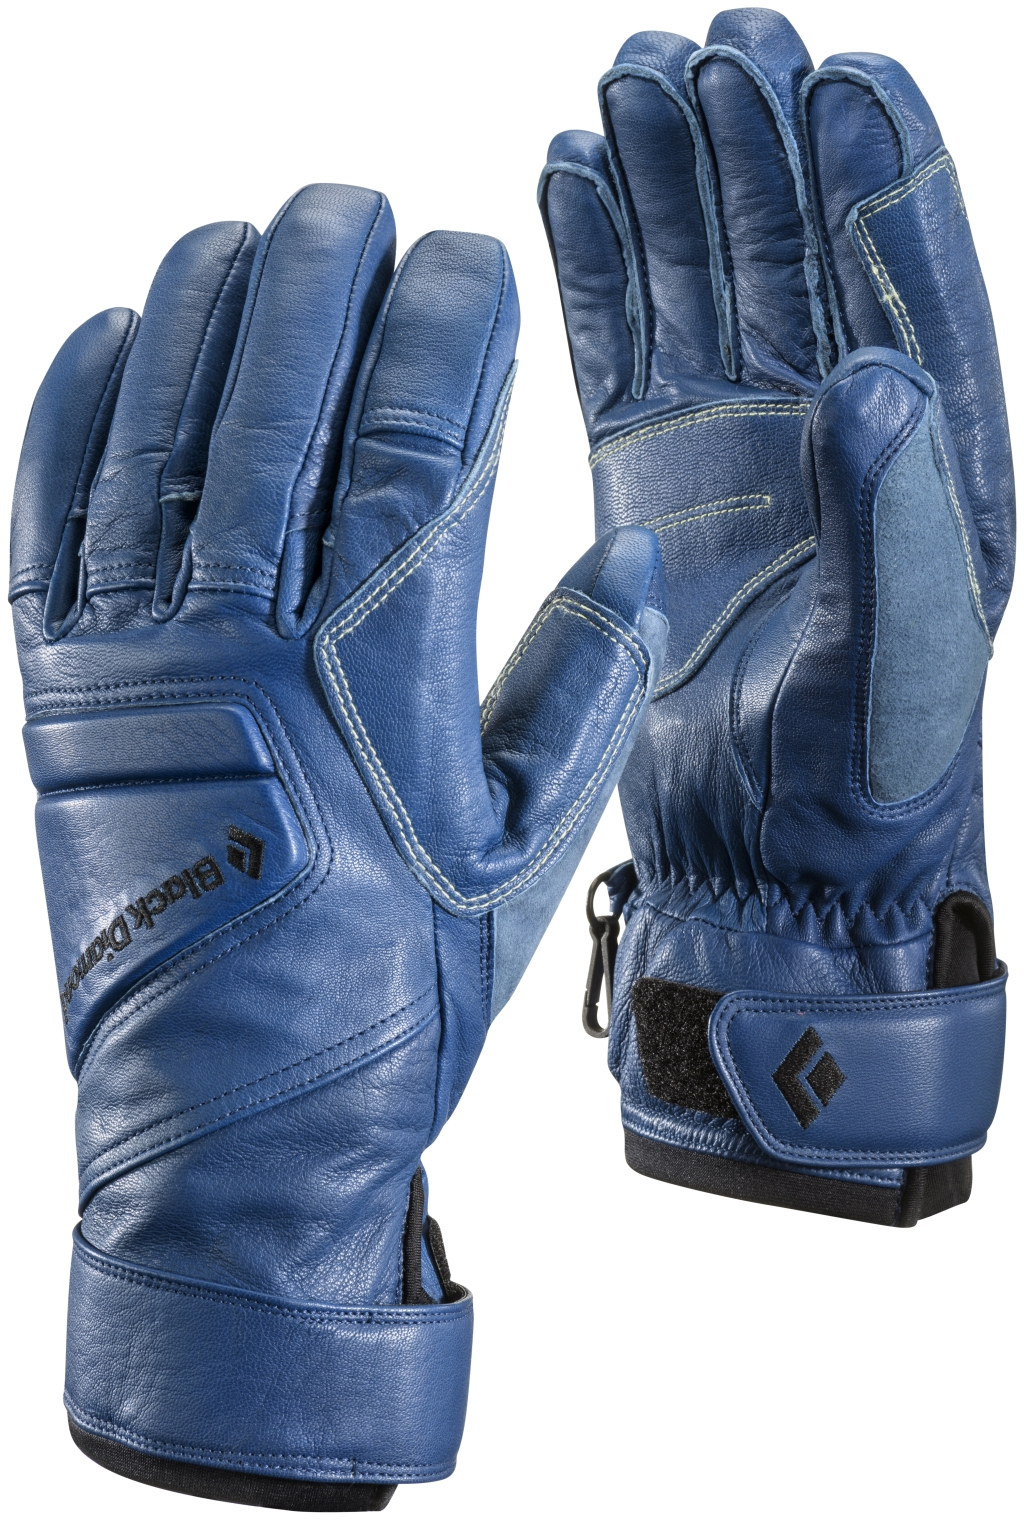 Black Diamond Legend Gloves Denim-30